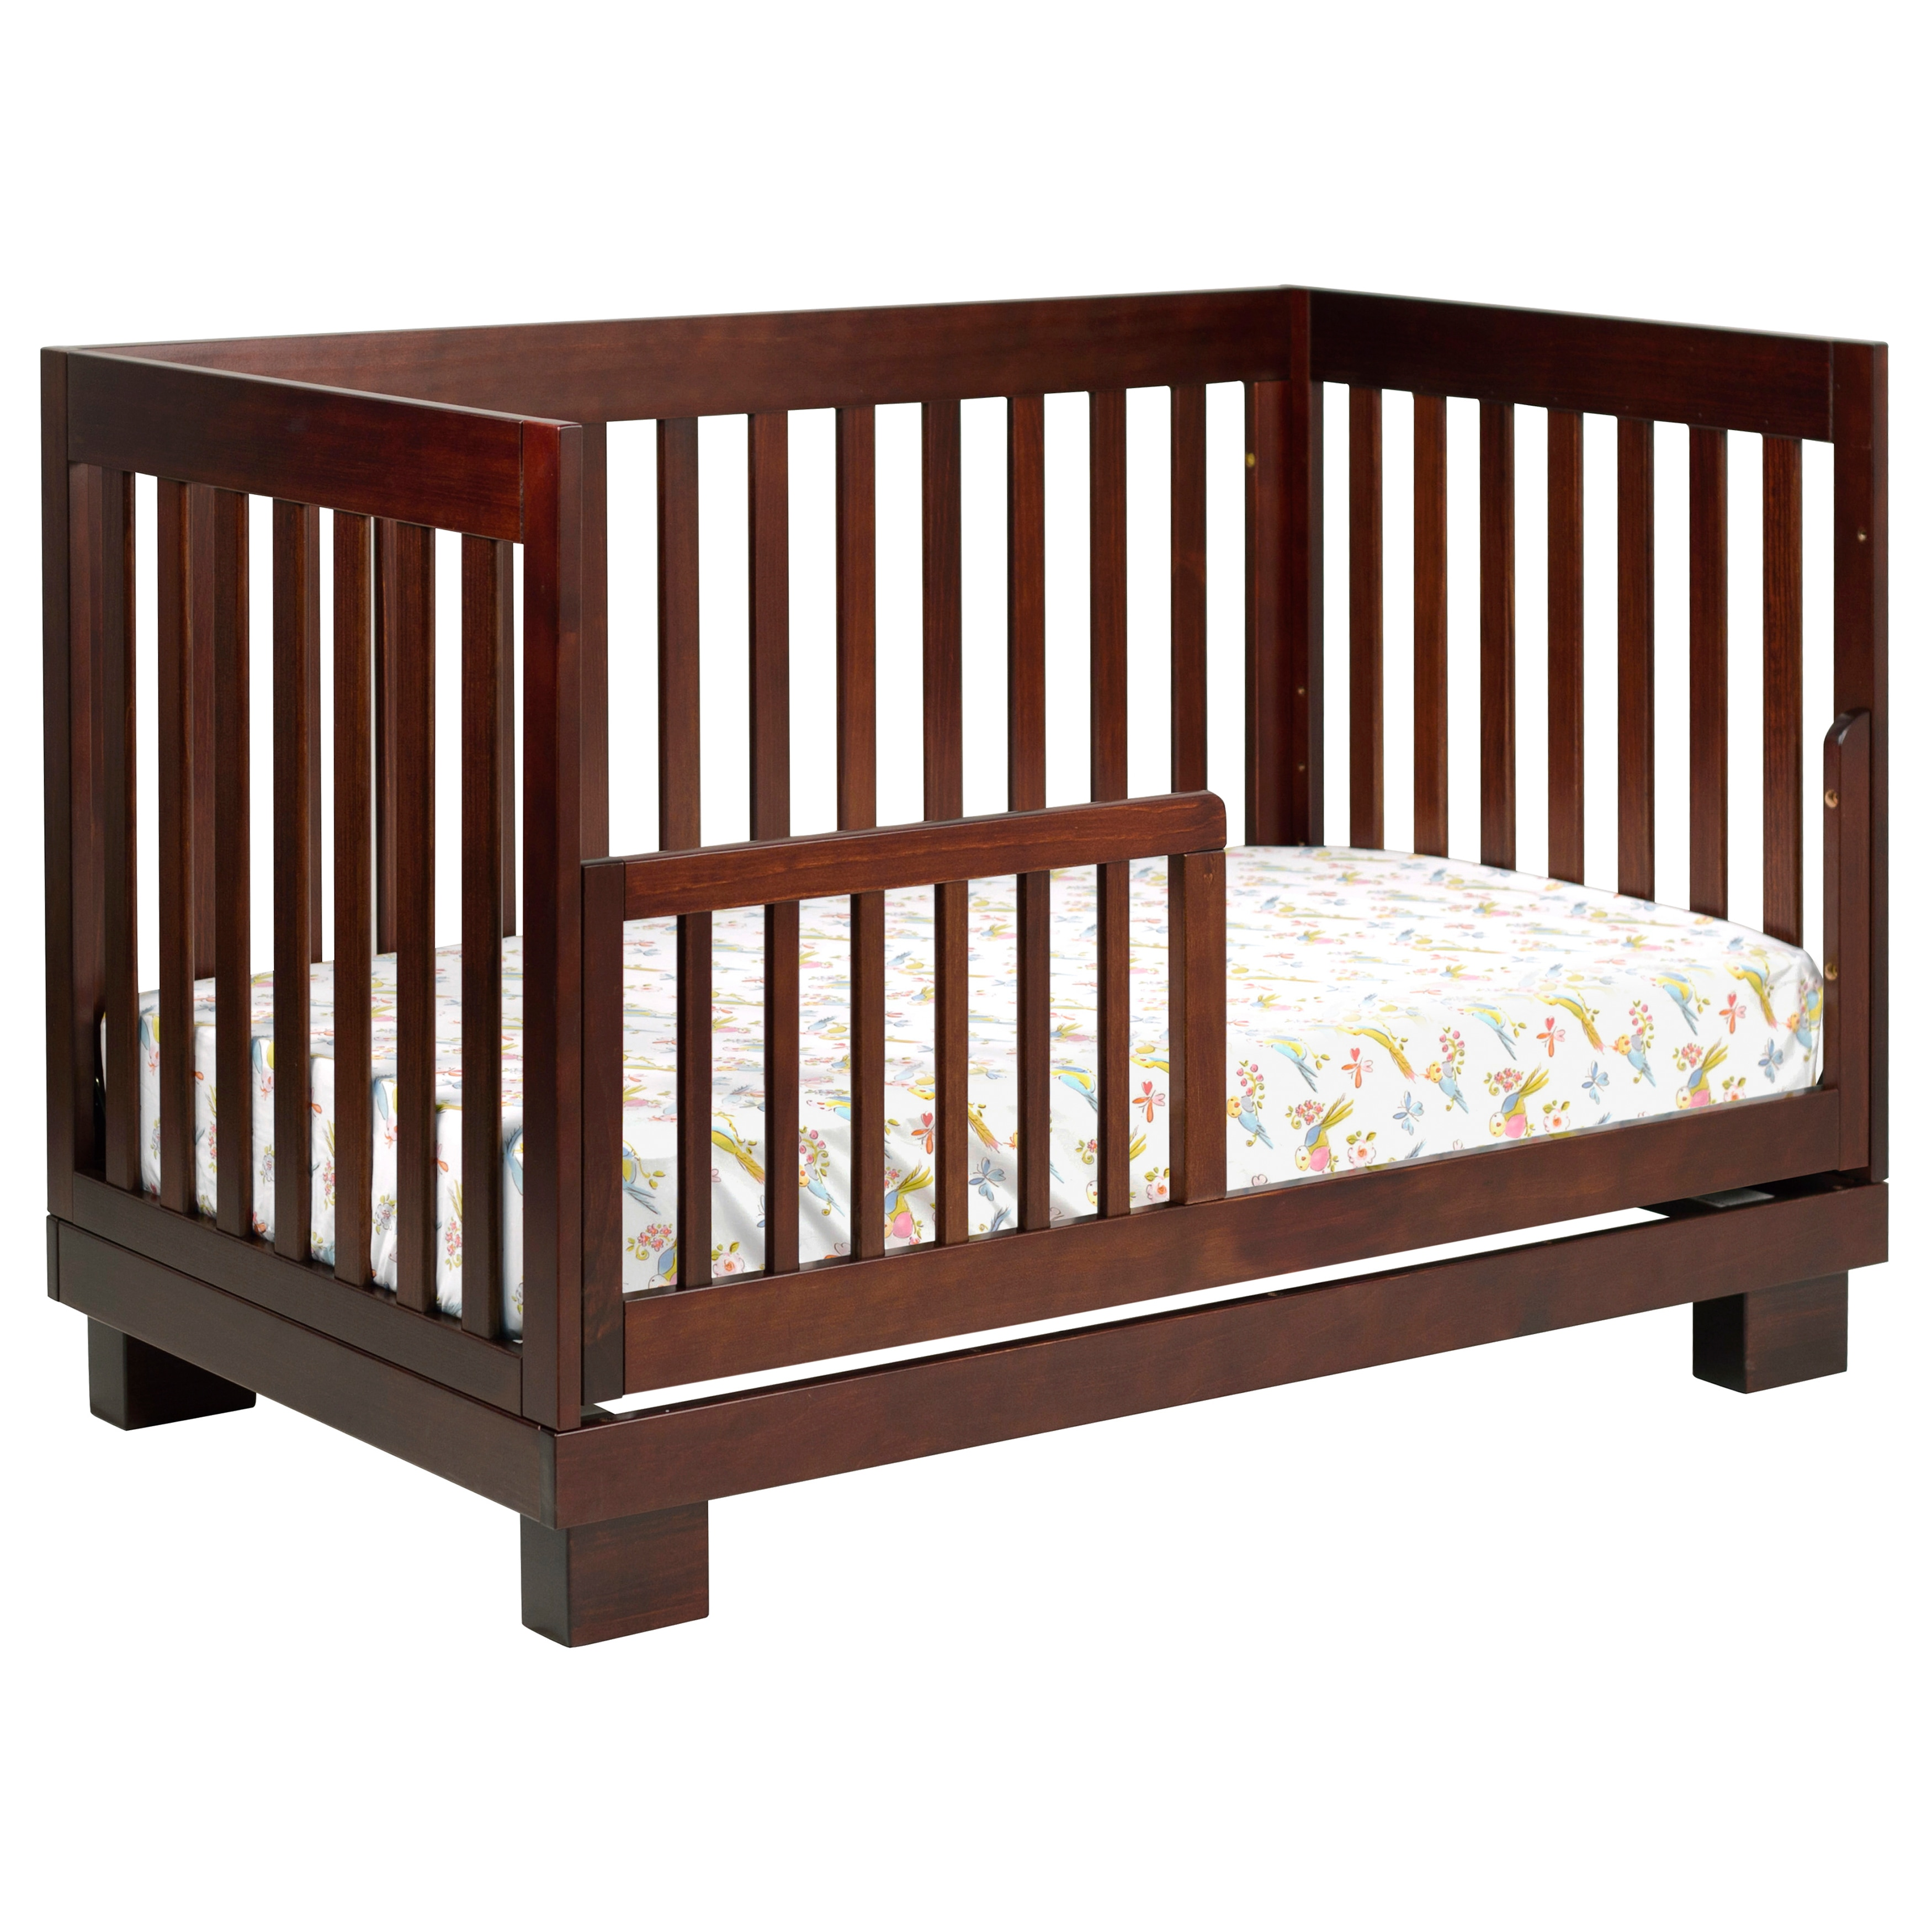 reviews wayfair baby graco cribs crib remi ca pdp in kids convertible